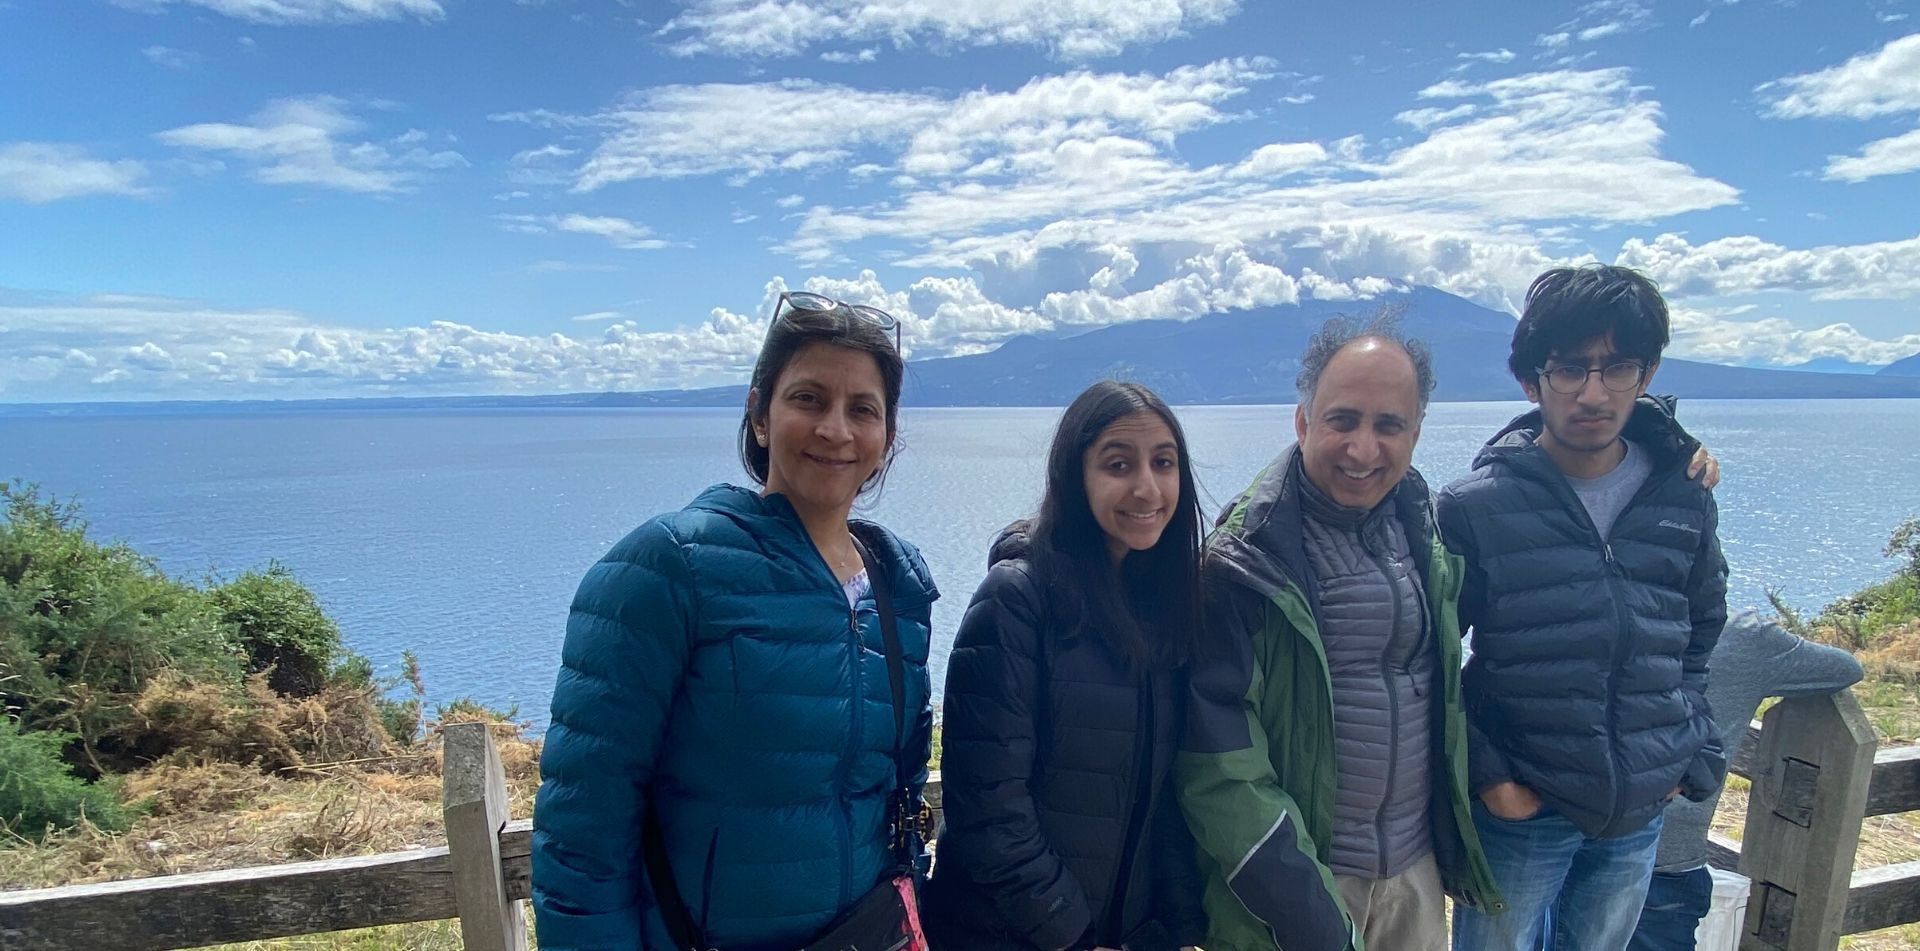 Traveling family on a walking path in Chile along the water - luxury vacation destinations